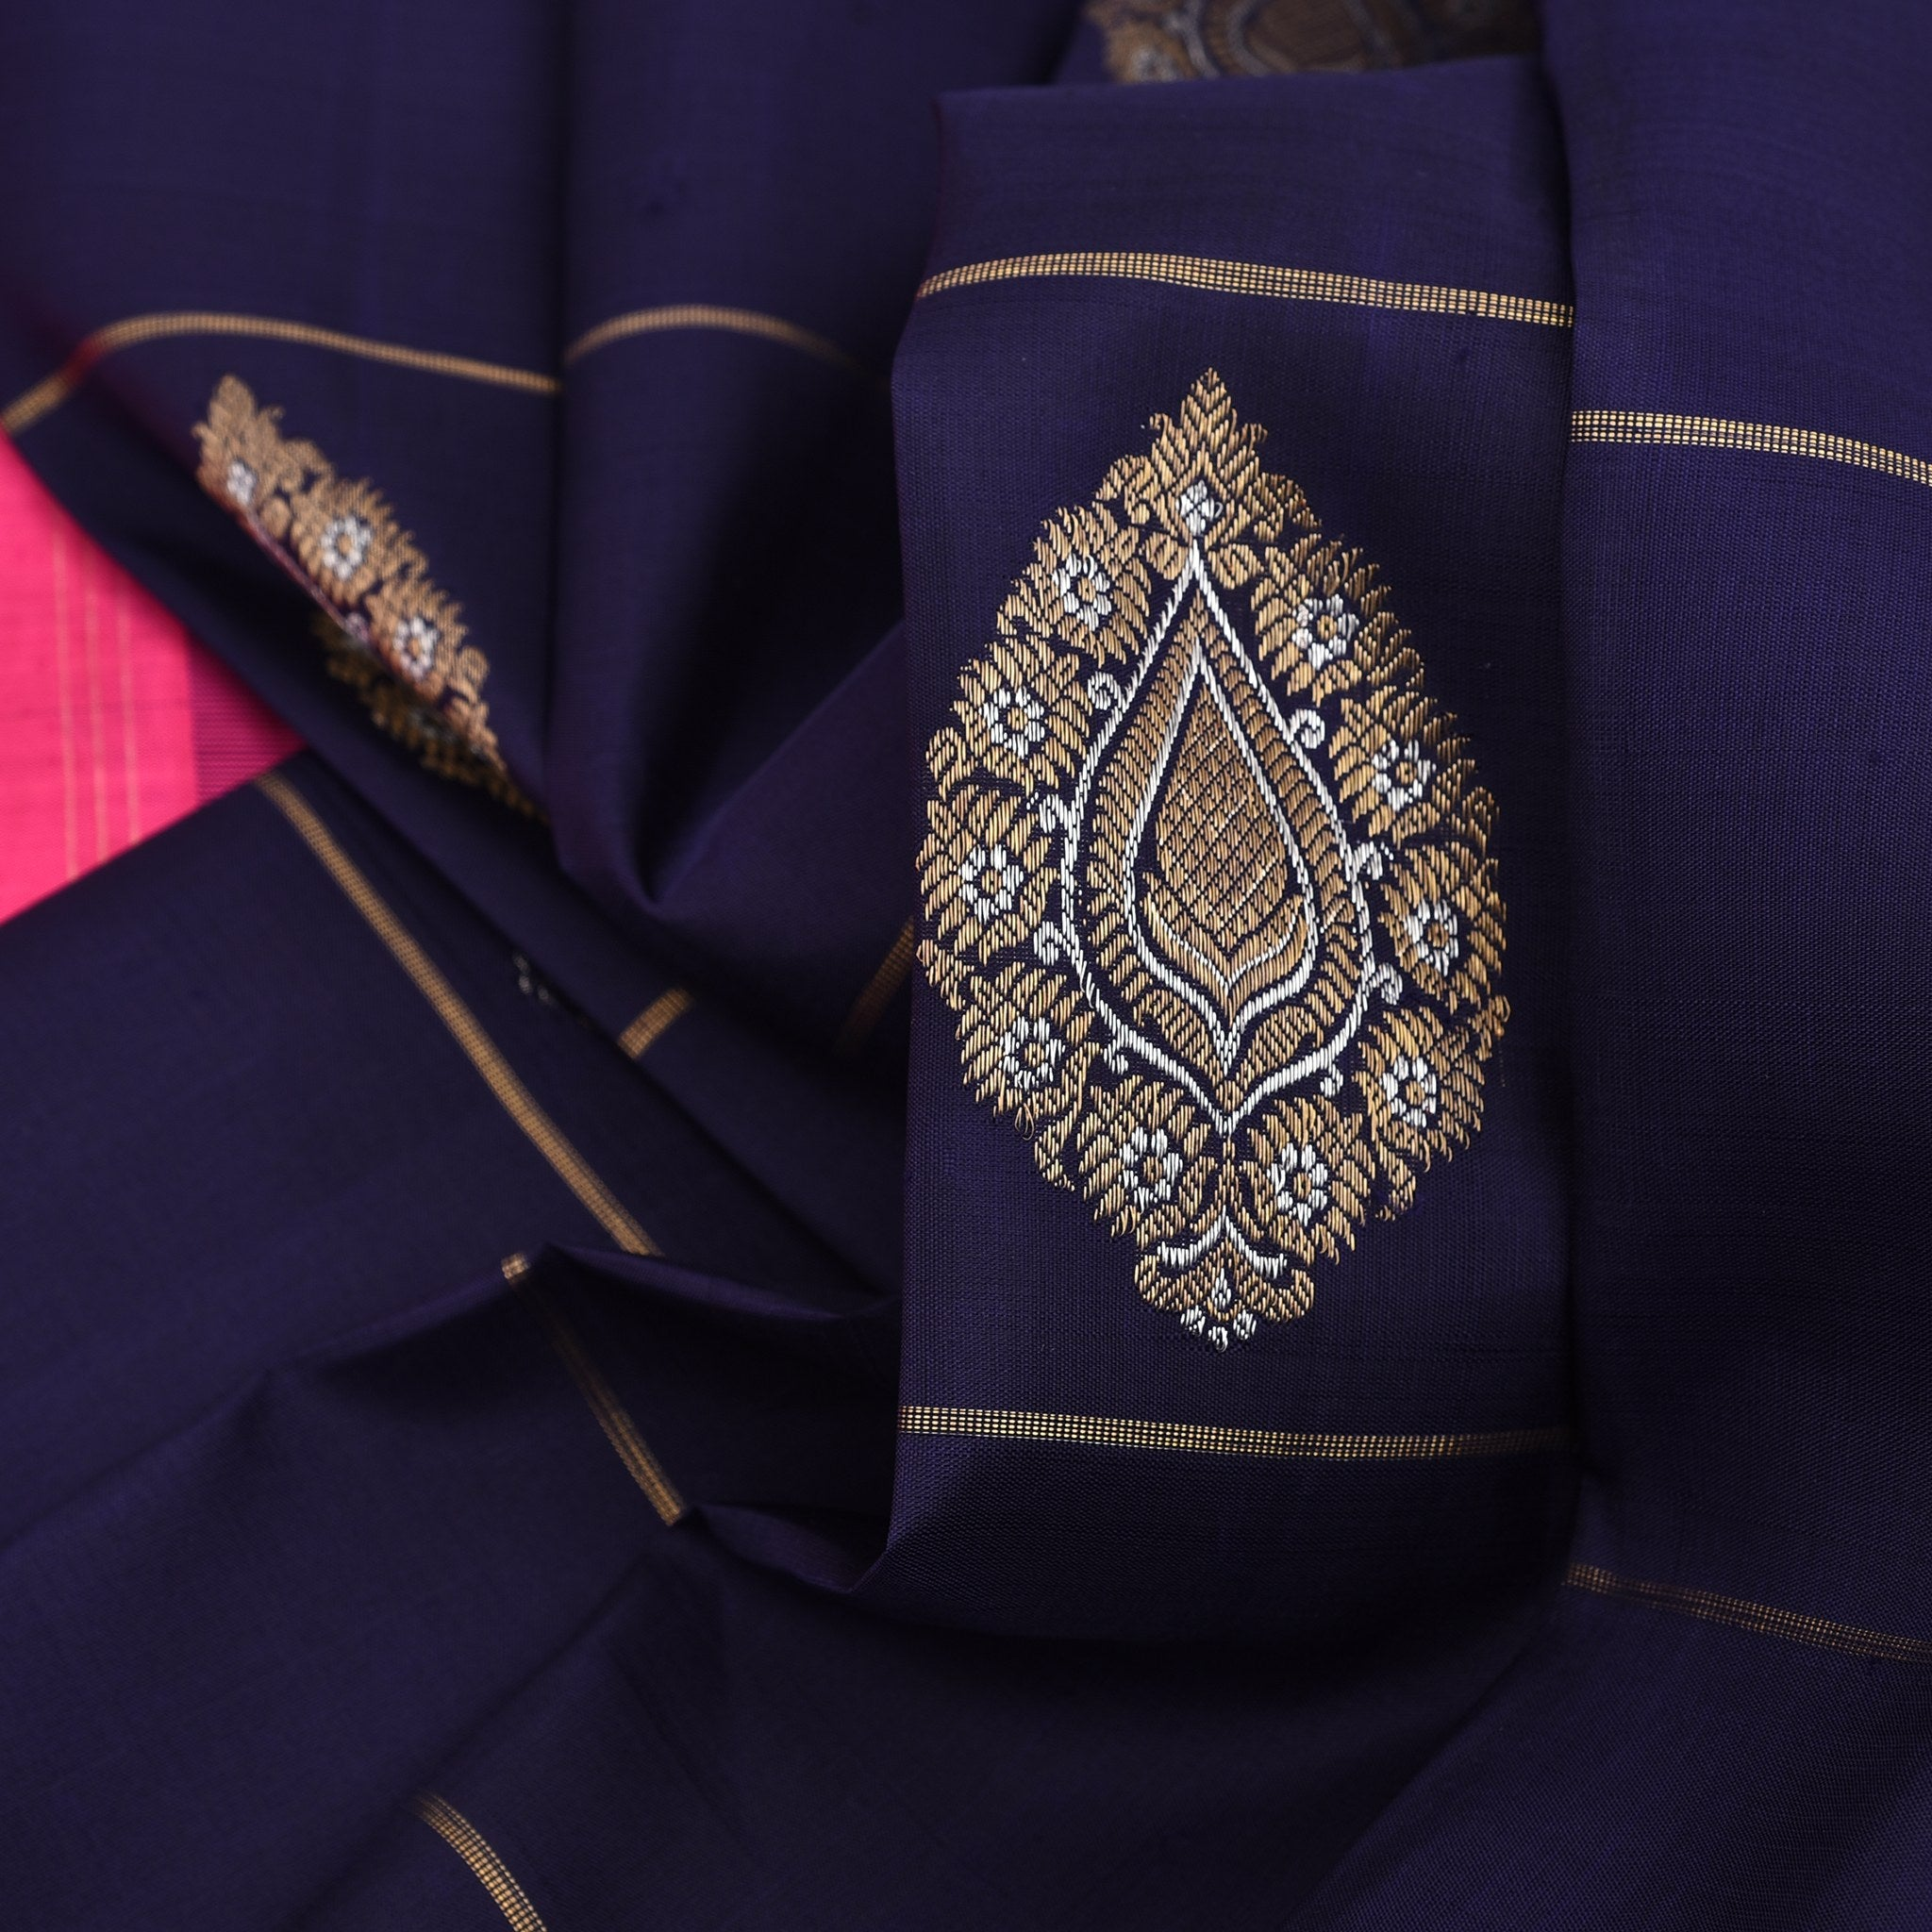 BB095953-Midnight Blue Borderless Kanjivaram Handloom Silk Saree